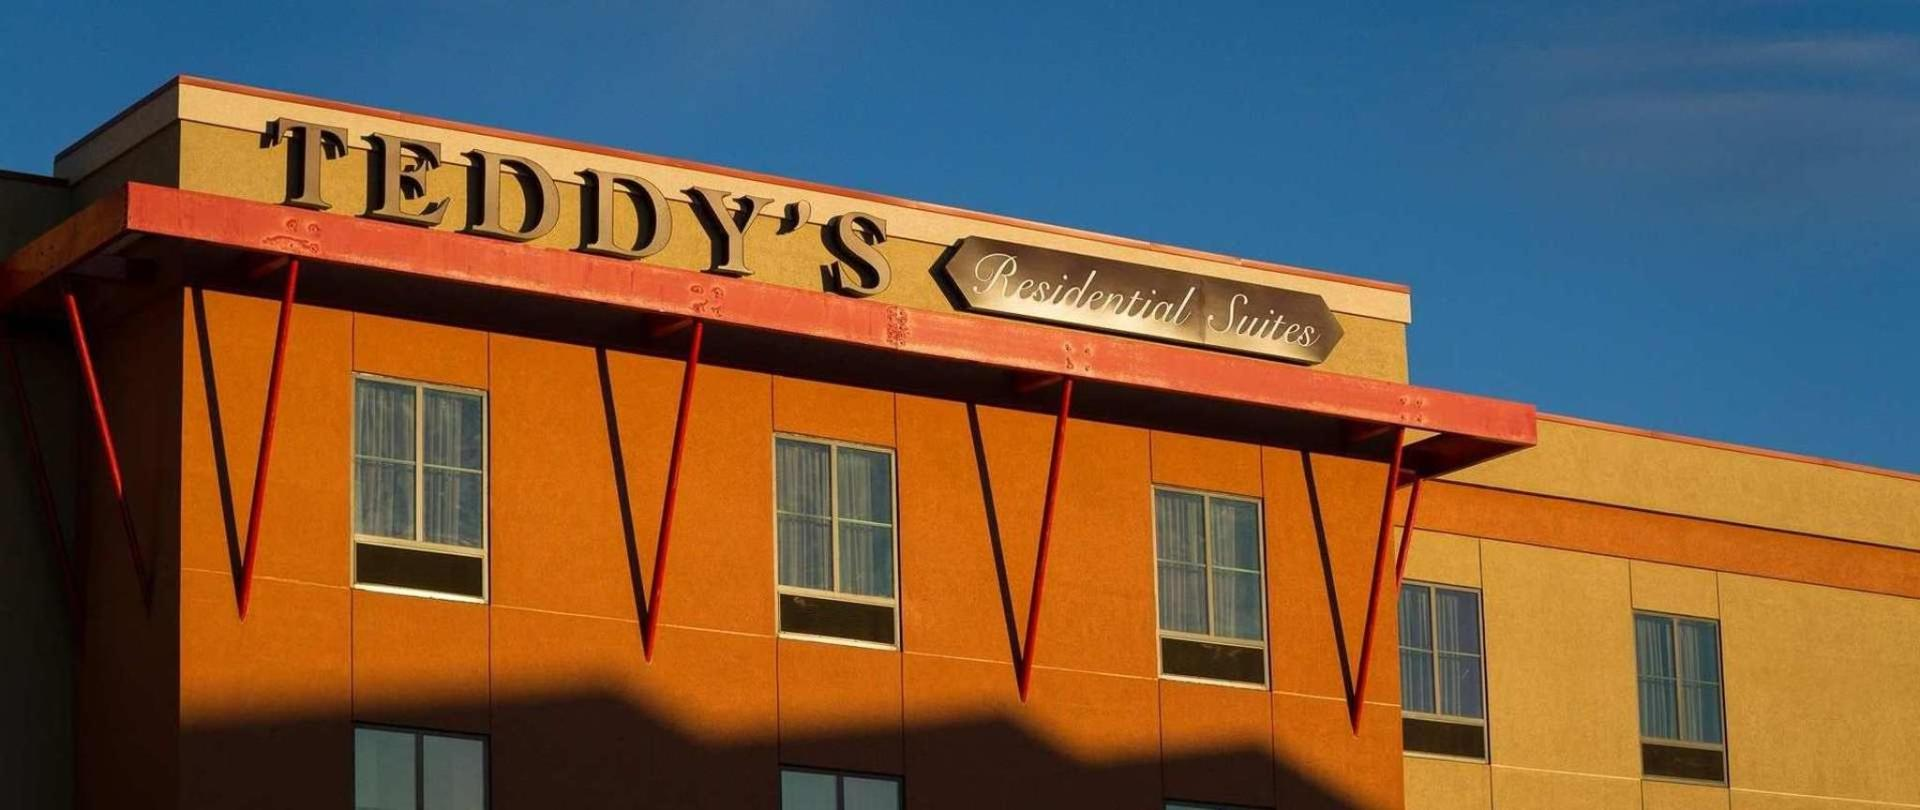 Teddy's Residential Suites New Town